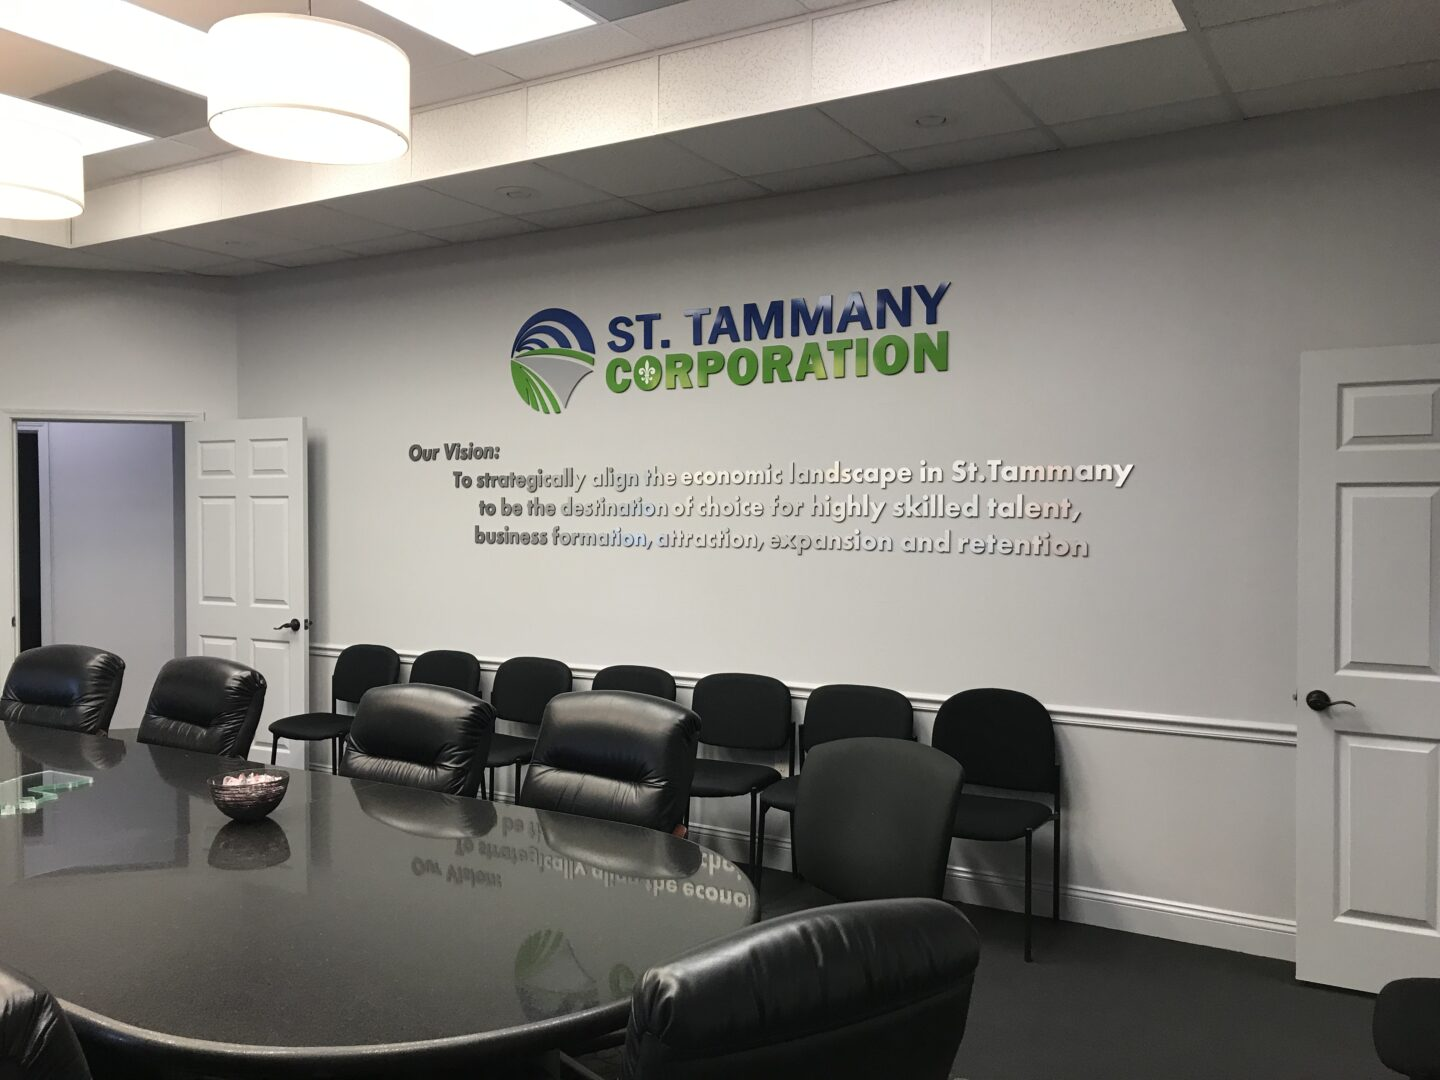 St. Tammany Corporation Architectural Sign